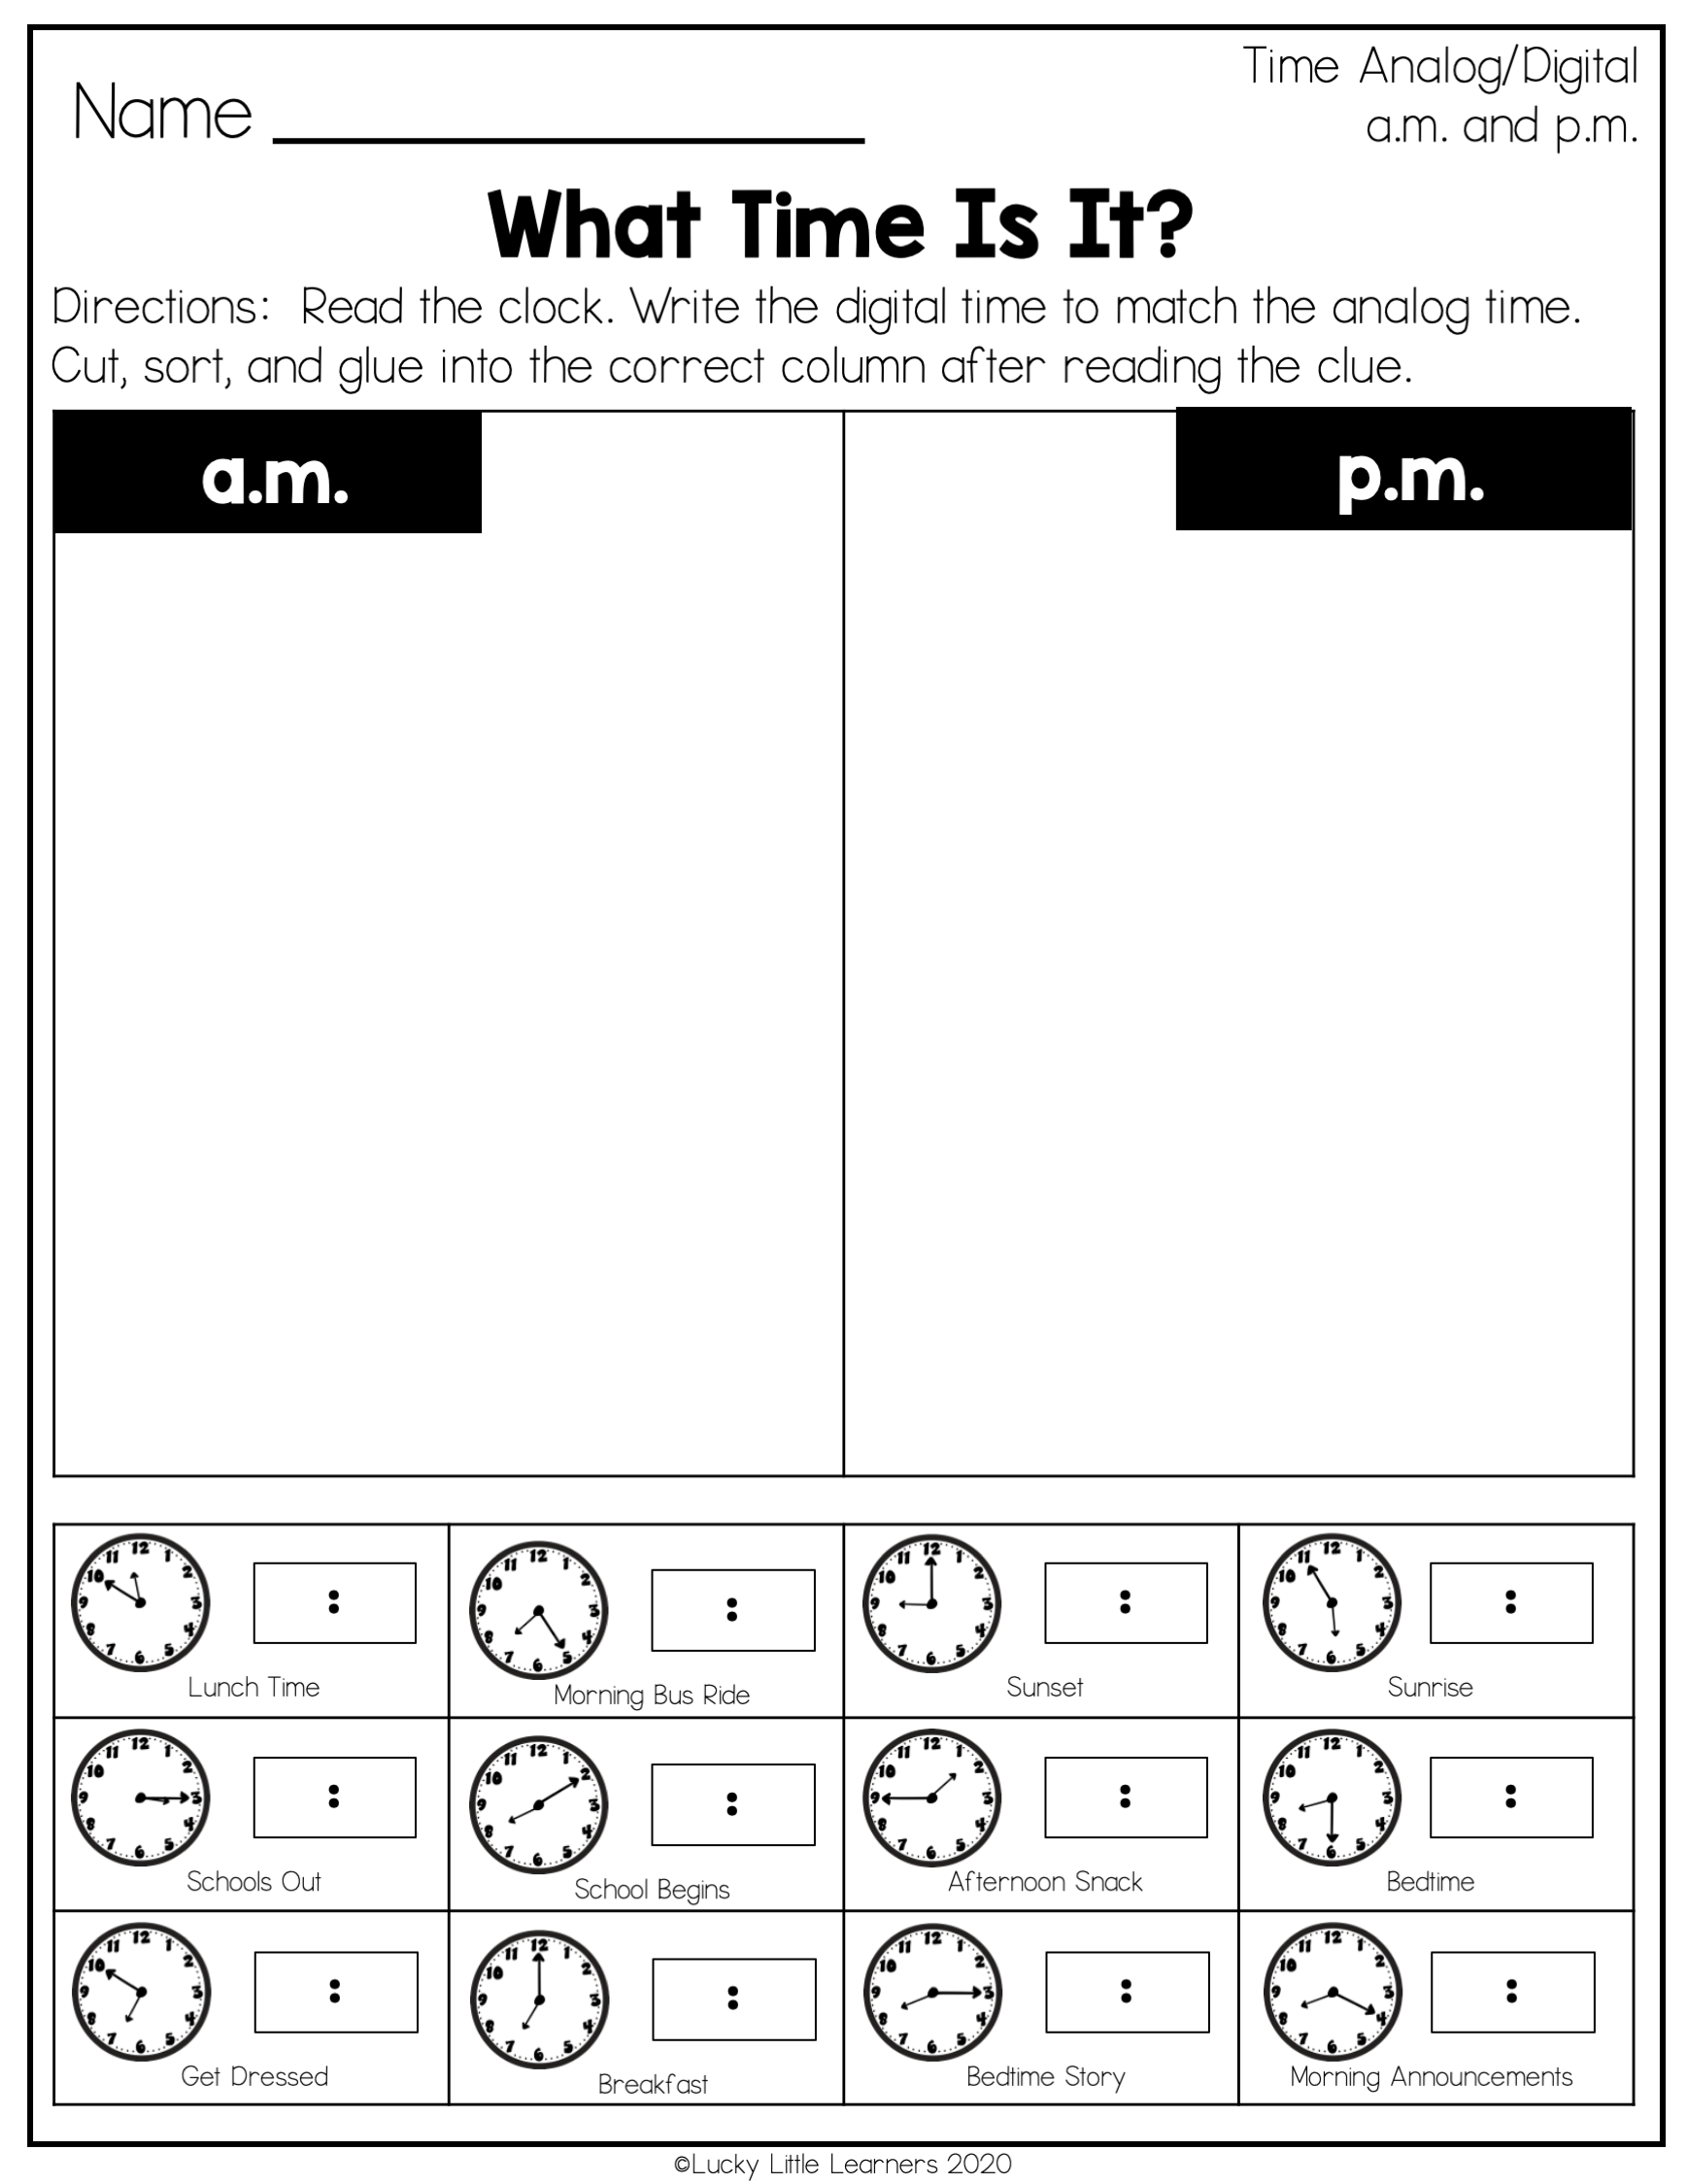 Telling time is a tough skill for second graders, but it has the opportunity to be a lot of fun as well! Add these worksheets in where you need some extra practice. Whether that's drawing hands on the clock or matching time your students will be confident in their time-telling skills in no time! Even better they will grow in confidence in that hard-to-learn skill - A.M and P.M. Make learning how to tell time on a clock rock!